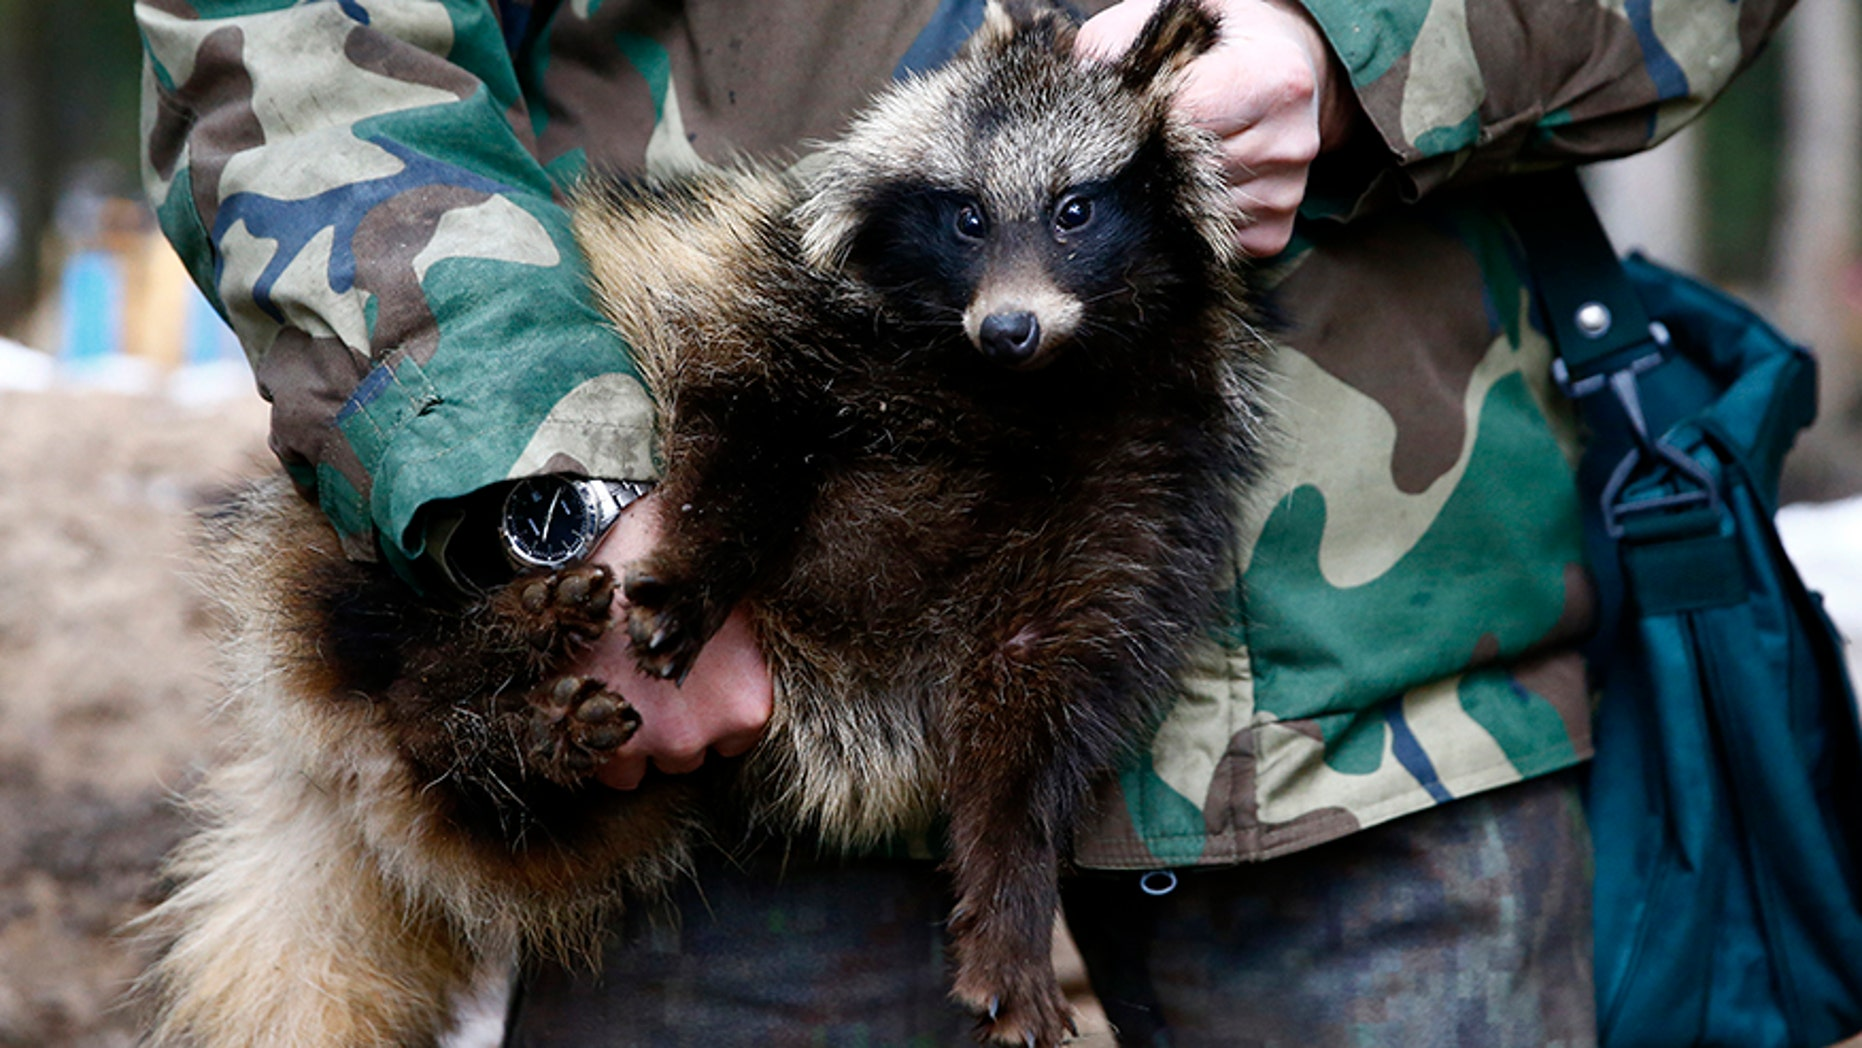 Holding up a raccoon like this hunter could land you six months of jail time in Utah.